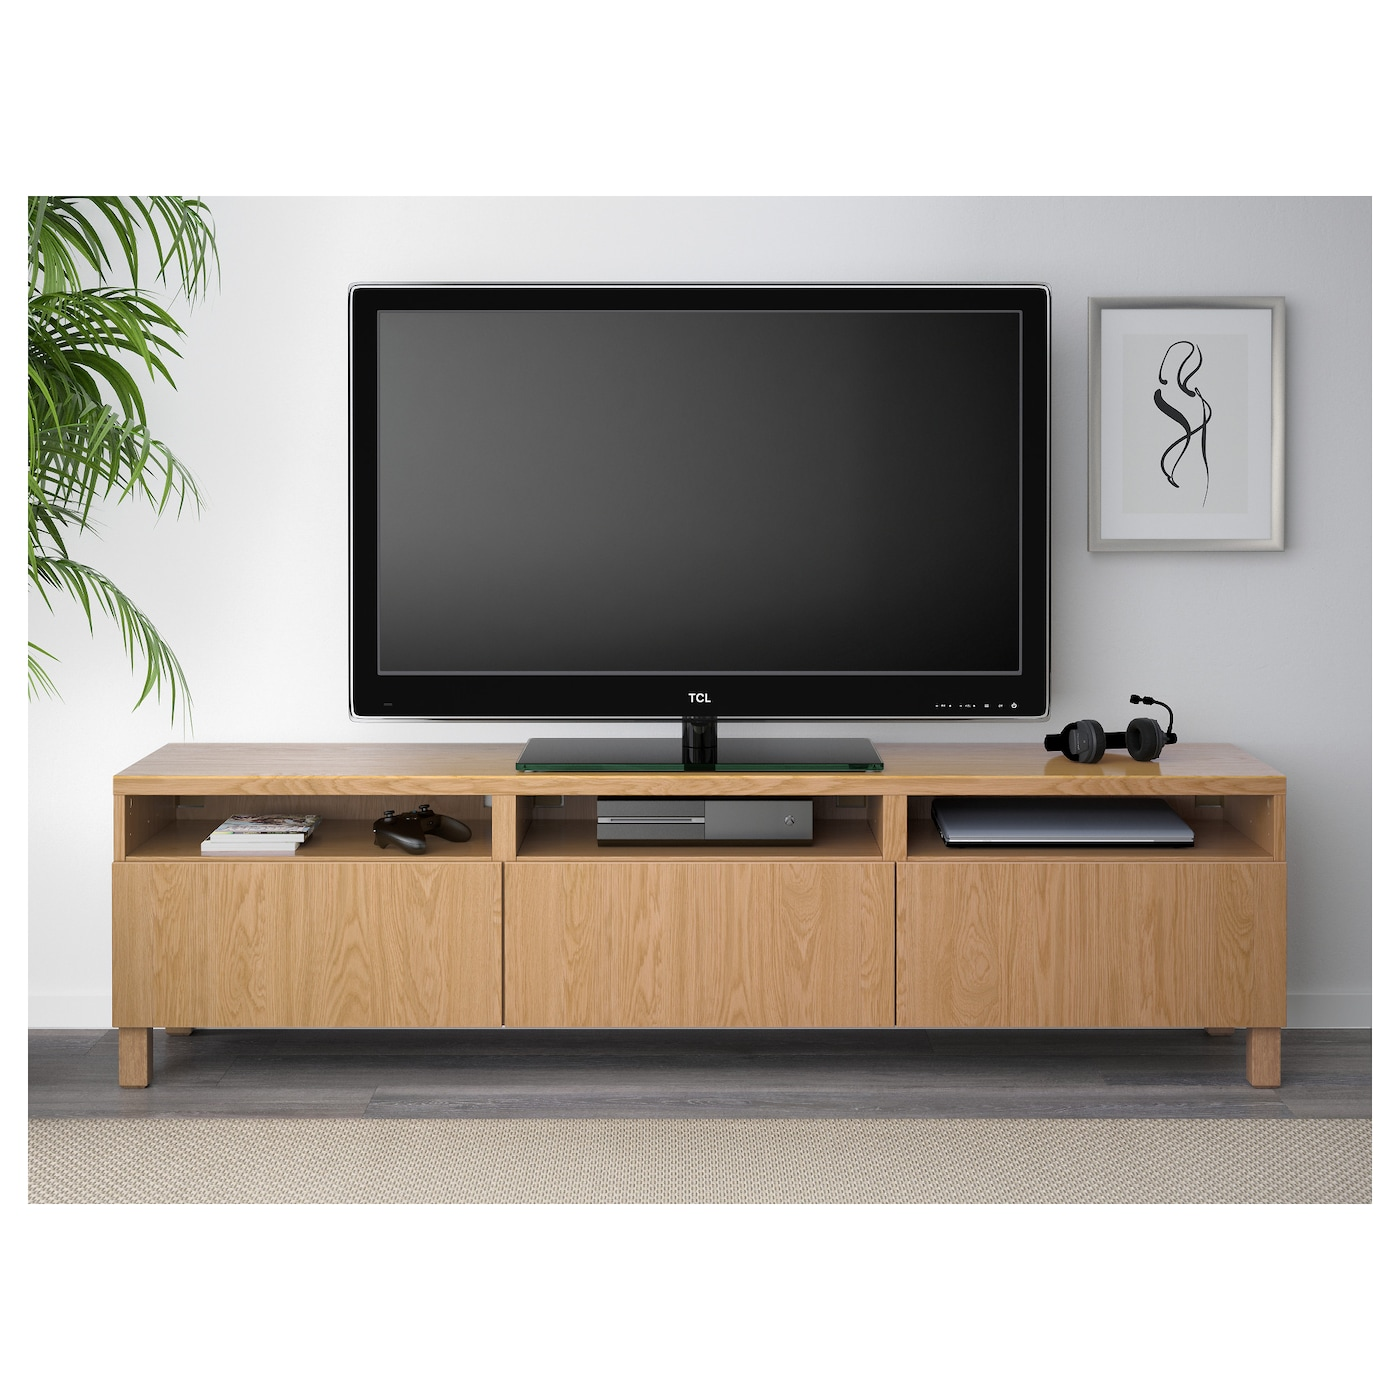 Best Tv Bench With Drawers Lappviken Oak Effect 180x40x48 Cm Ikea # Ikea Meuble Tv Besta